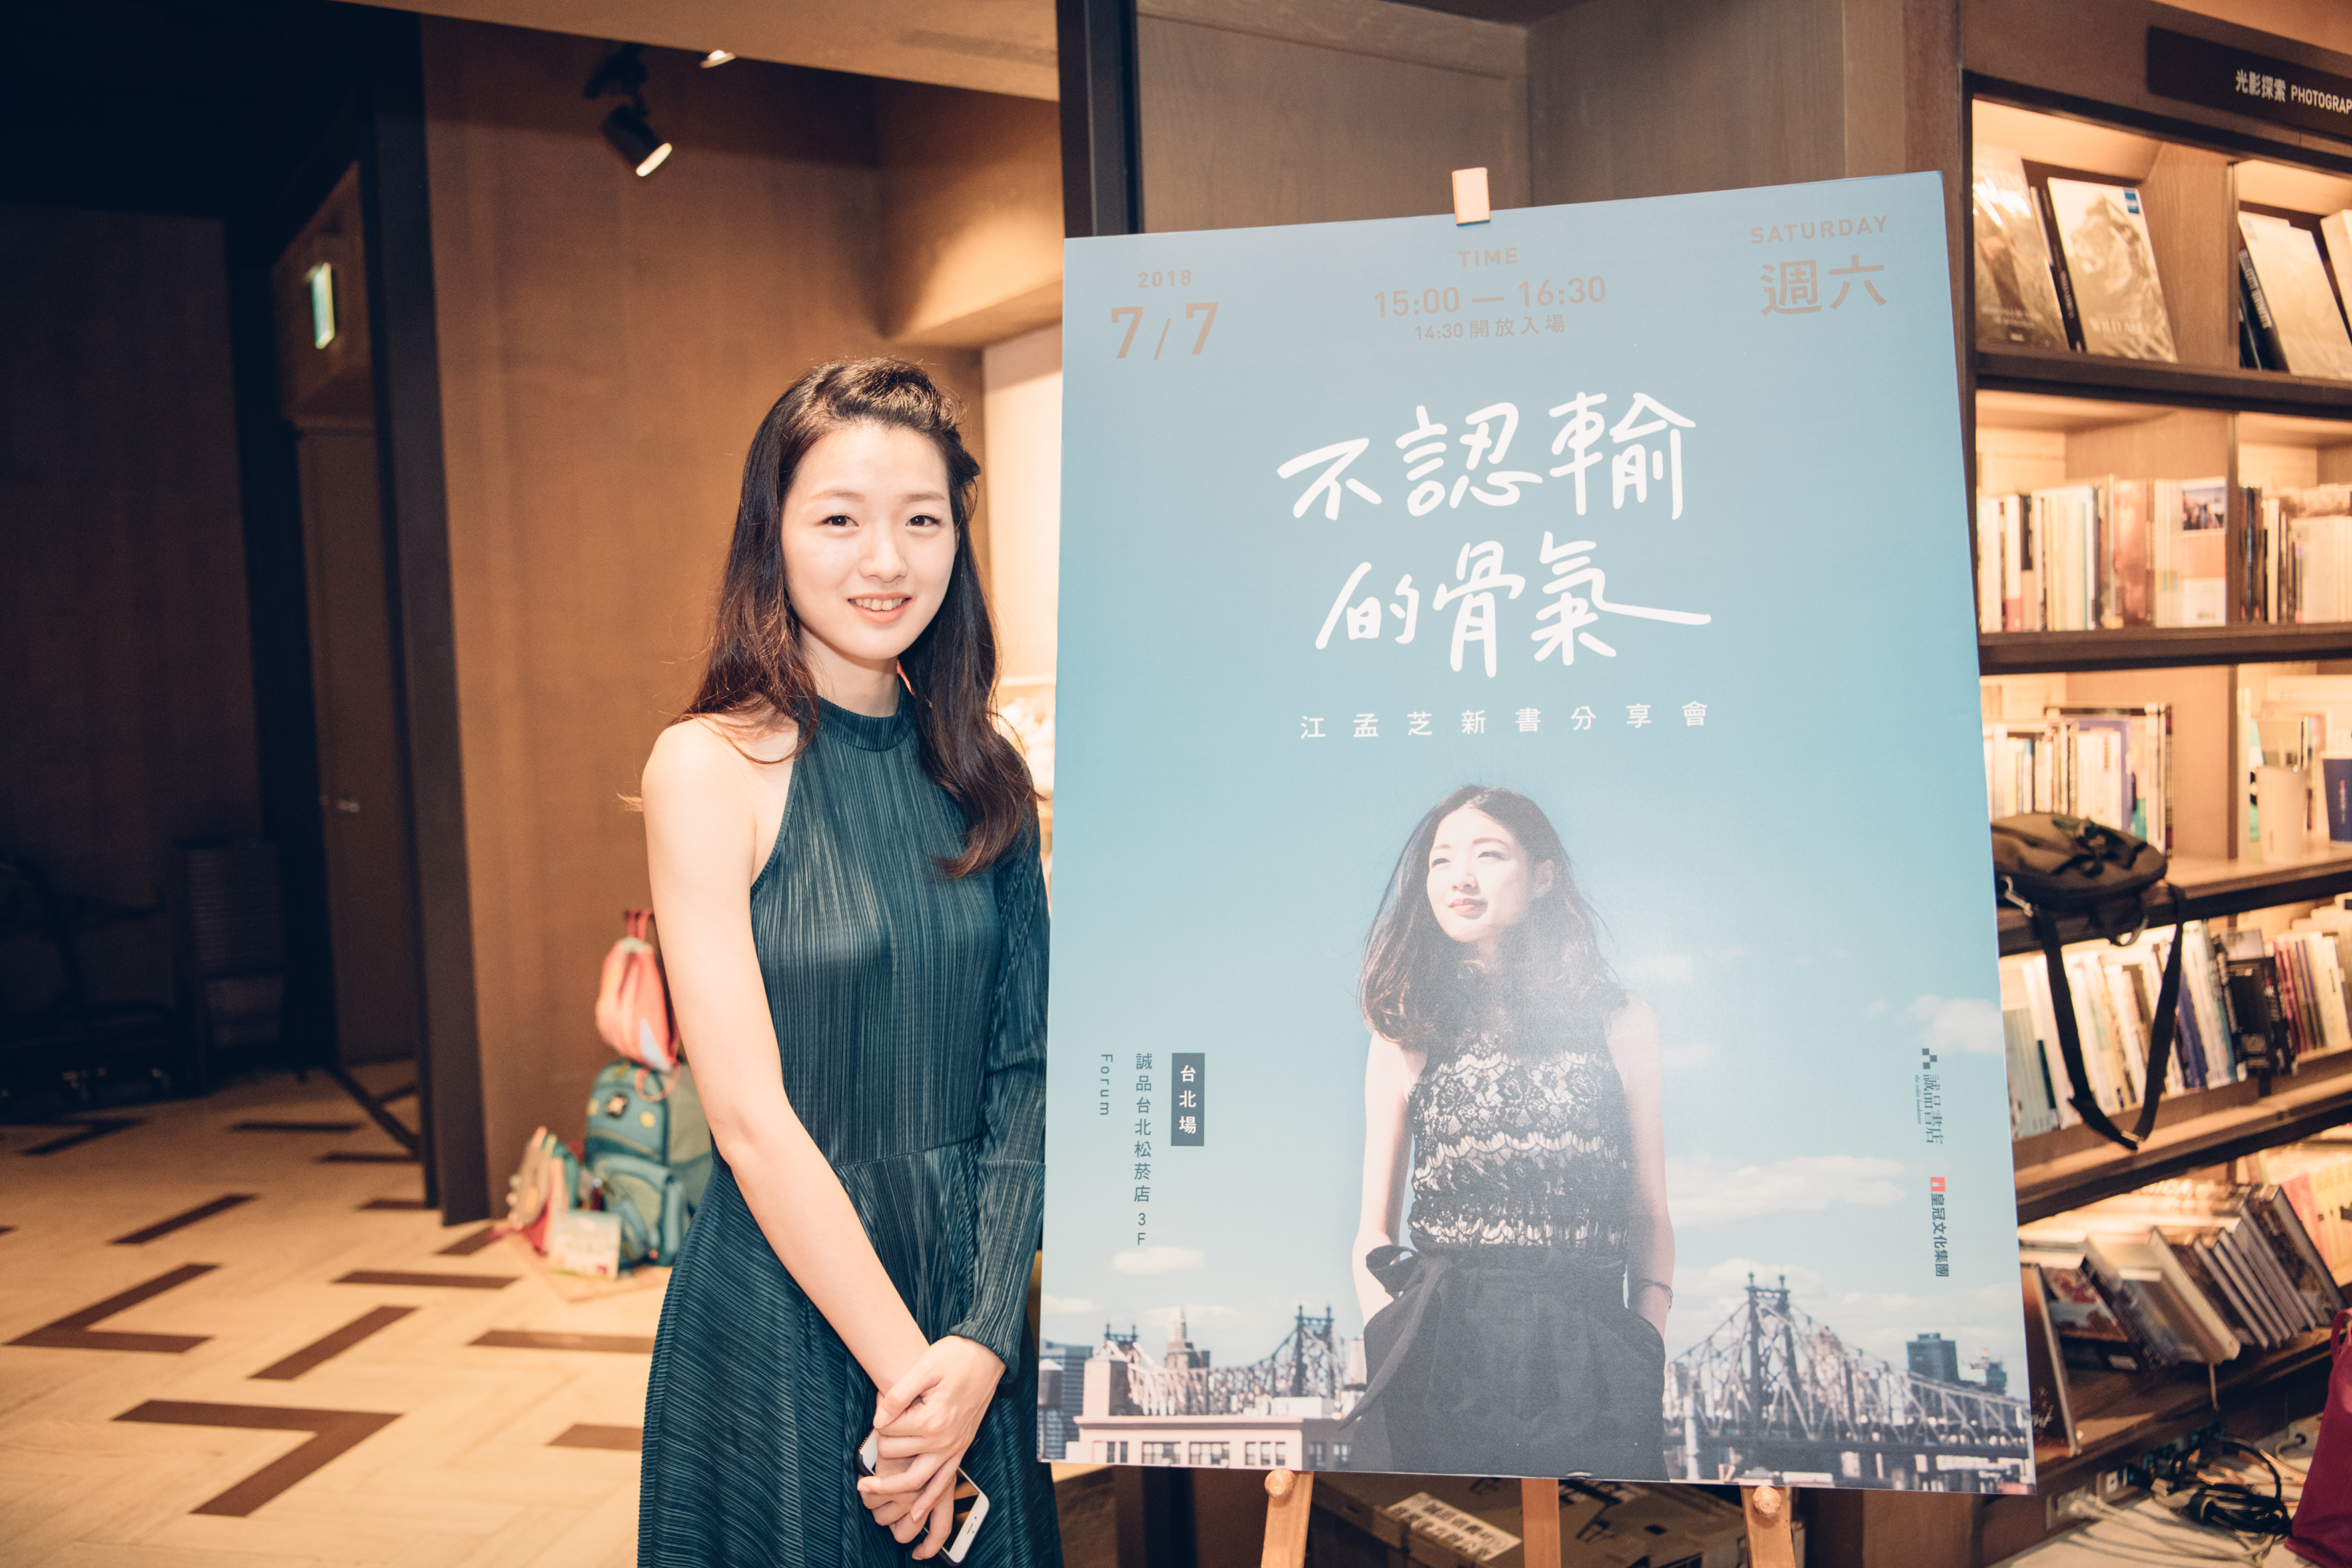 MengChih standing in front of a poster of her book cover in a bookstore.